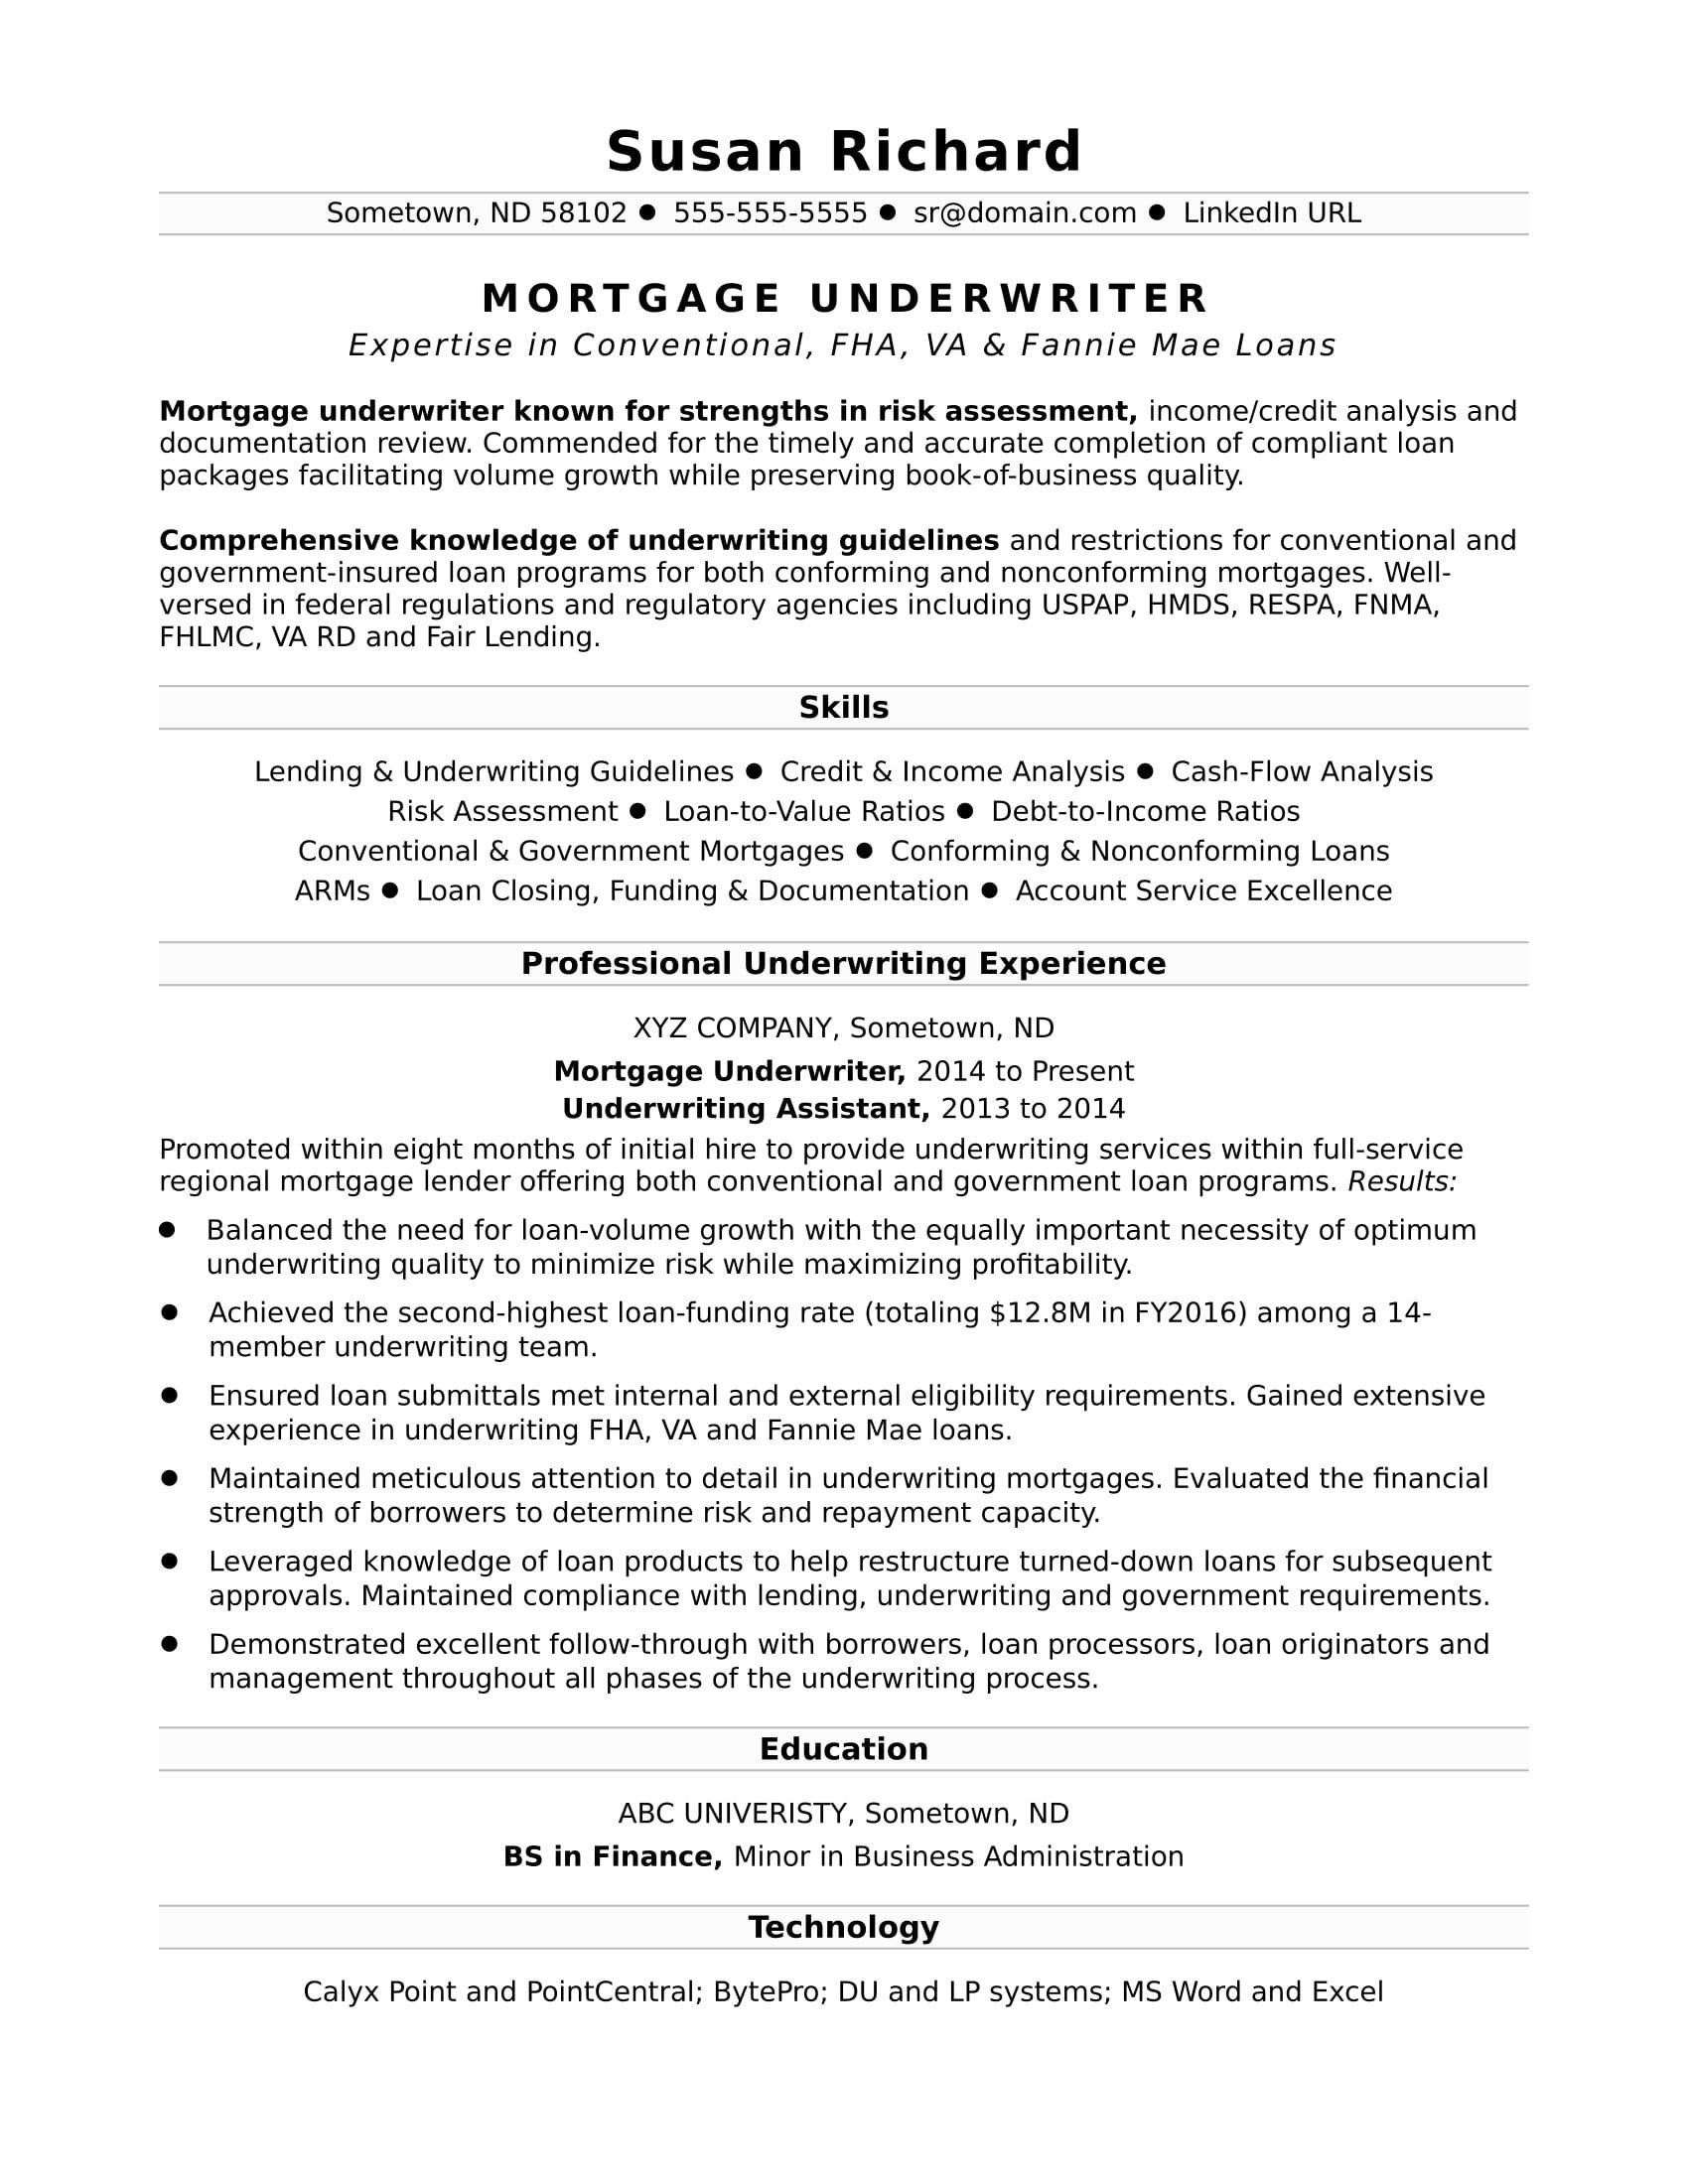 resume cover letter template word free example-Free Resume Search In India Unique New Programmer Resume Lovely Resume Cover Letter formatted Resume 0d 17-e